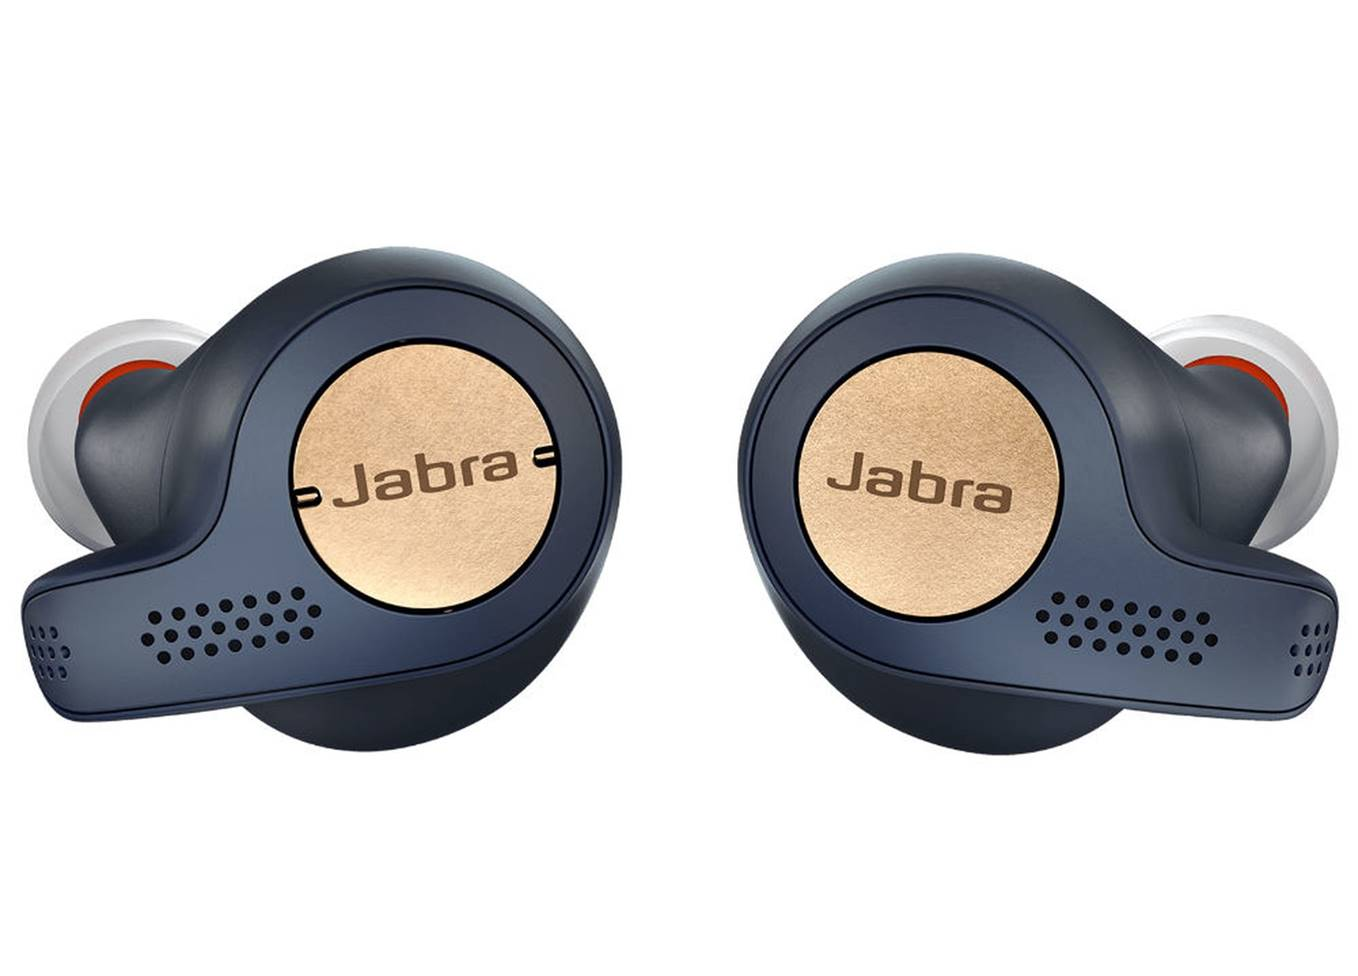 Jabra Elite Active 65t Best Bass Earbuds